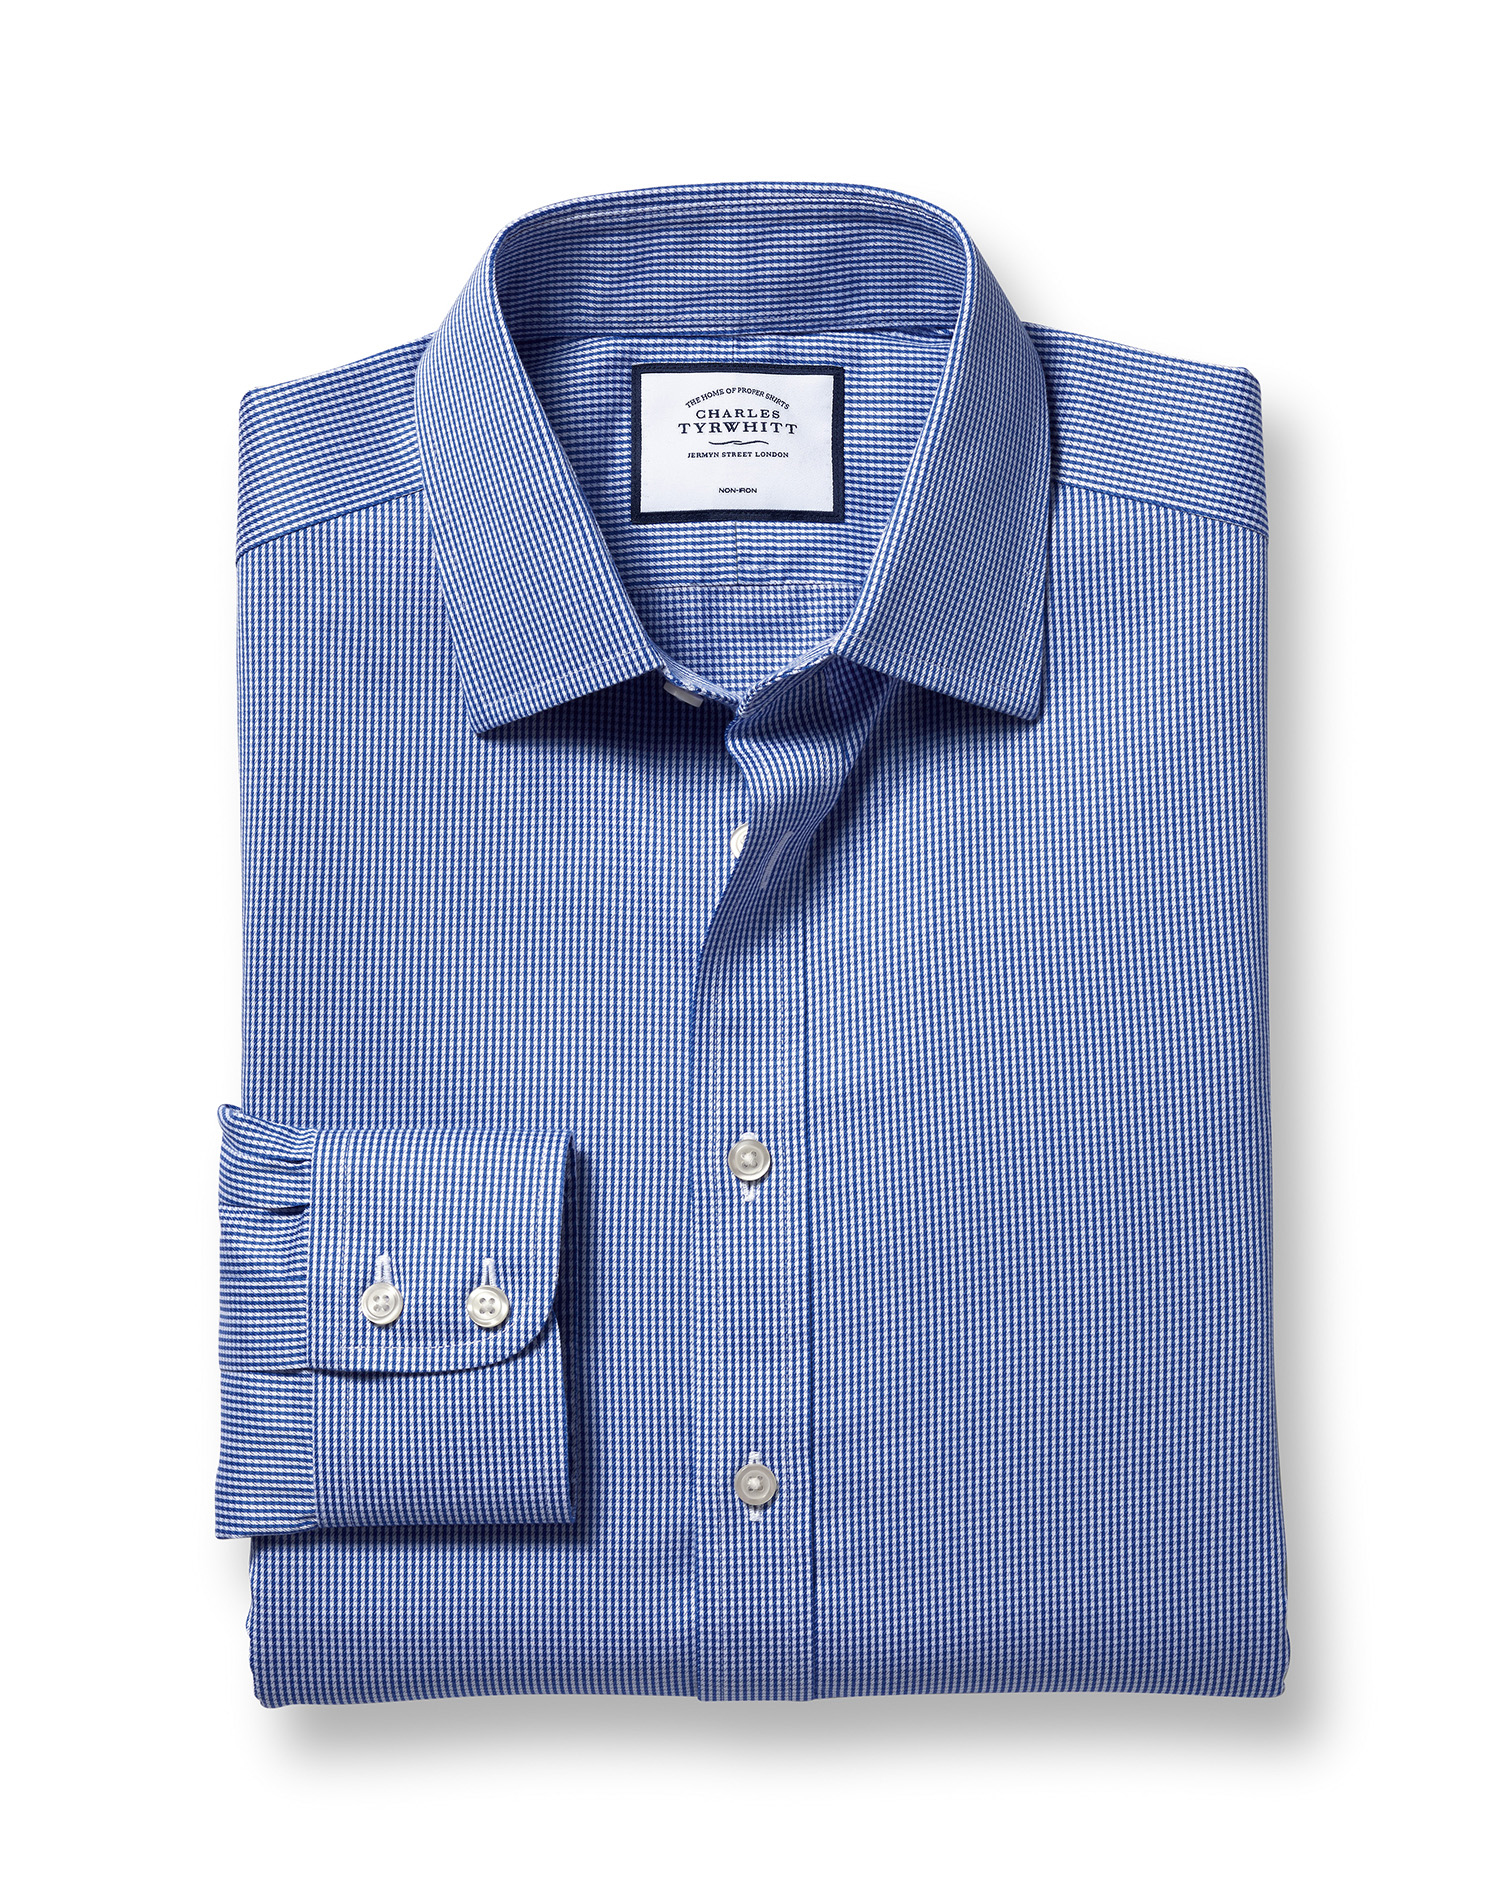 Slim Fit Non-Iron Puppytooth Royal Blue Cotton Formal Shirt Double Cuff Size 15/35 by Charles Tyrwhi